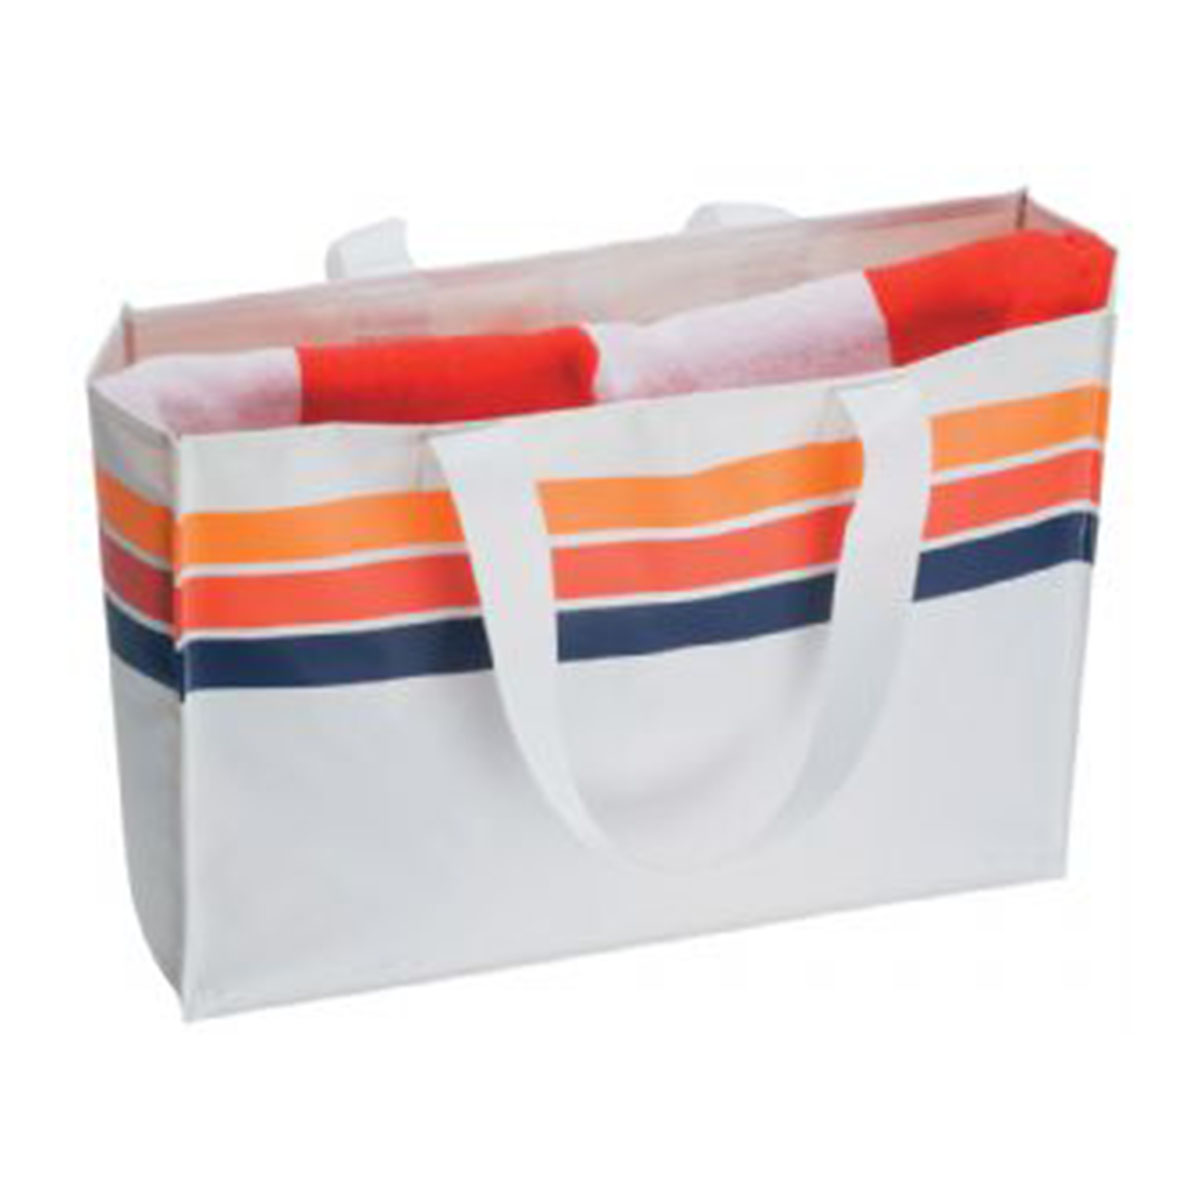 Beach Bag-White with Navy, Red and Orange Stripes.